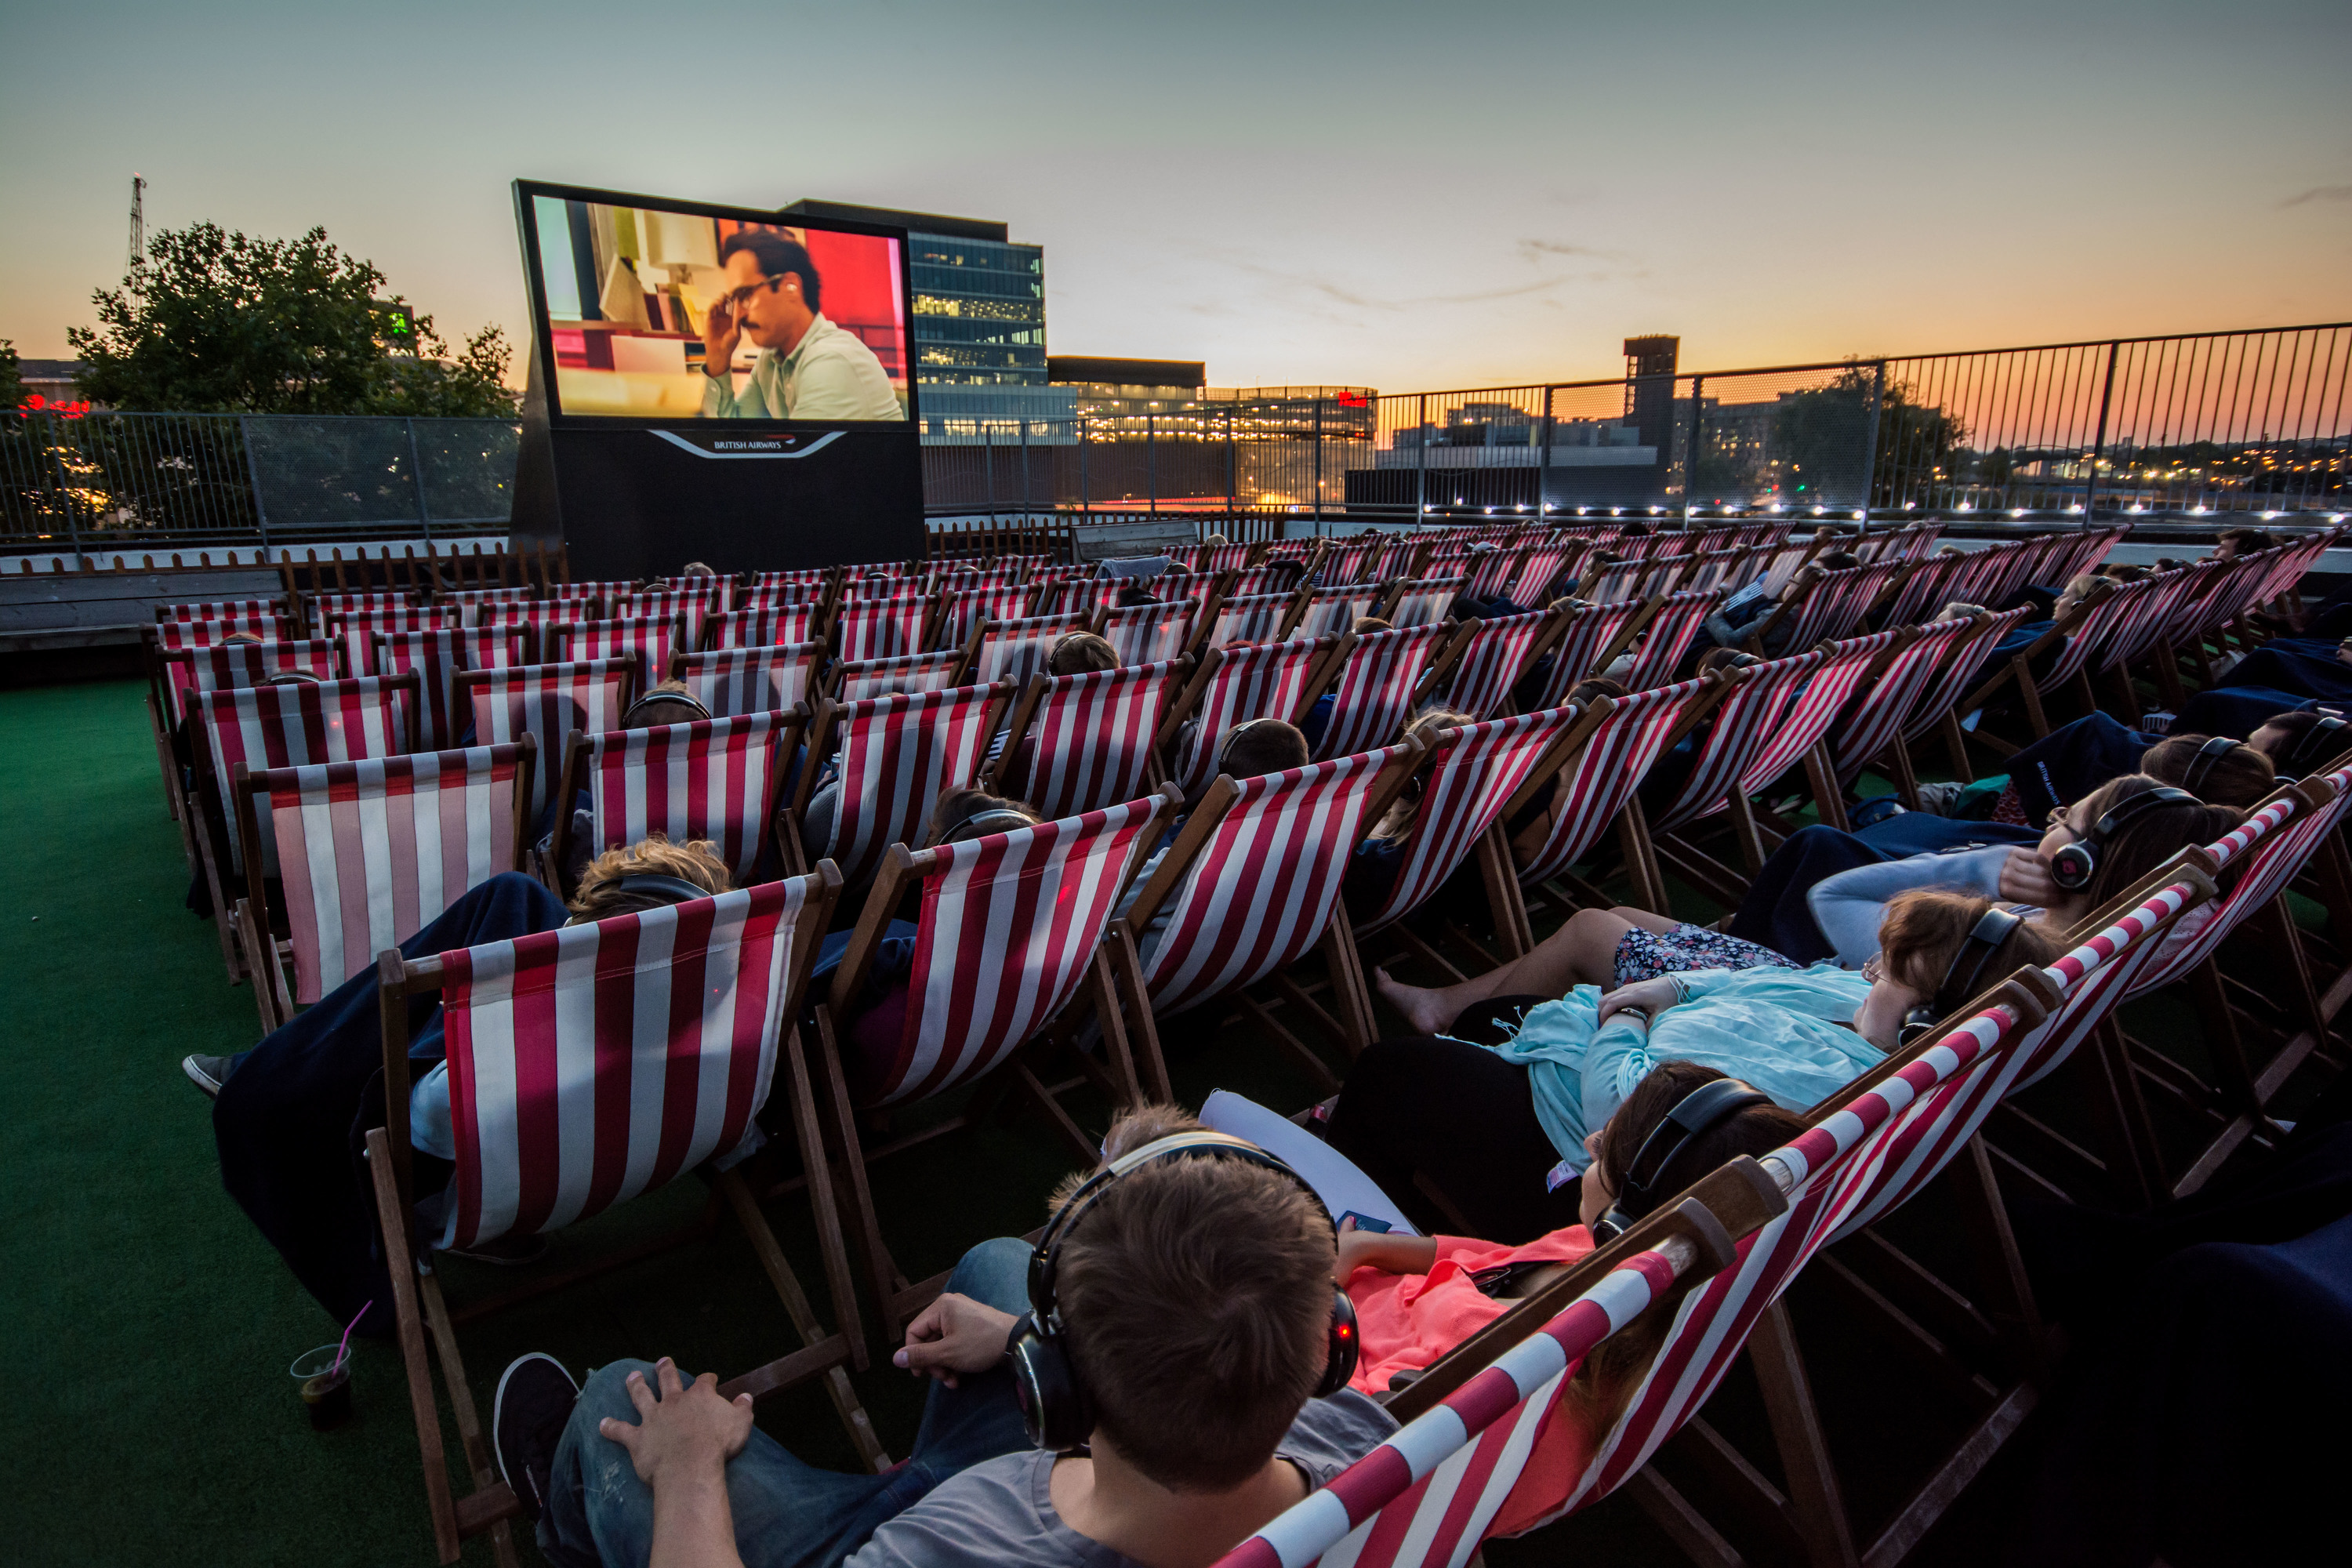 Outdoor movies in nyc including free screenings and for Things to do in nyc evening